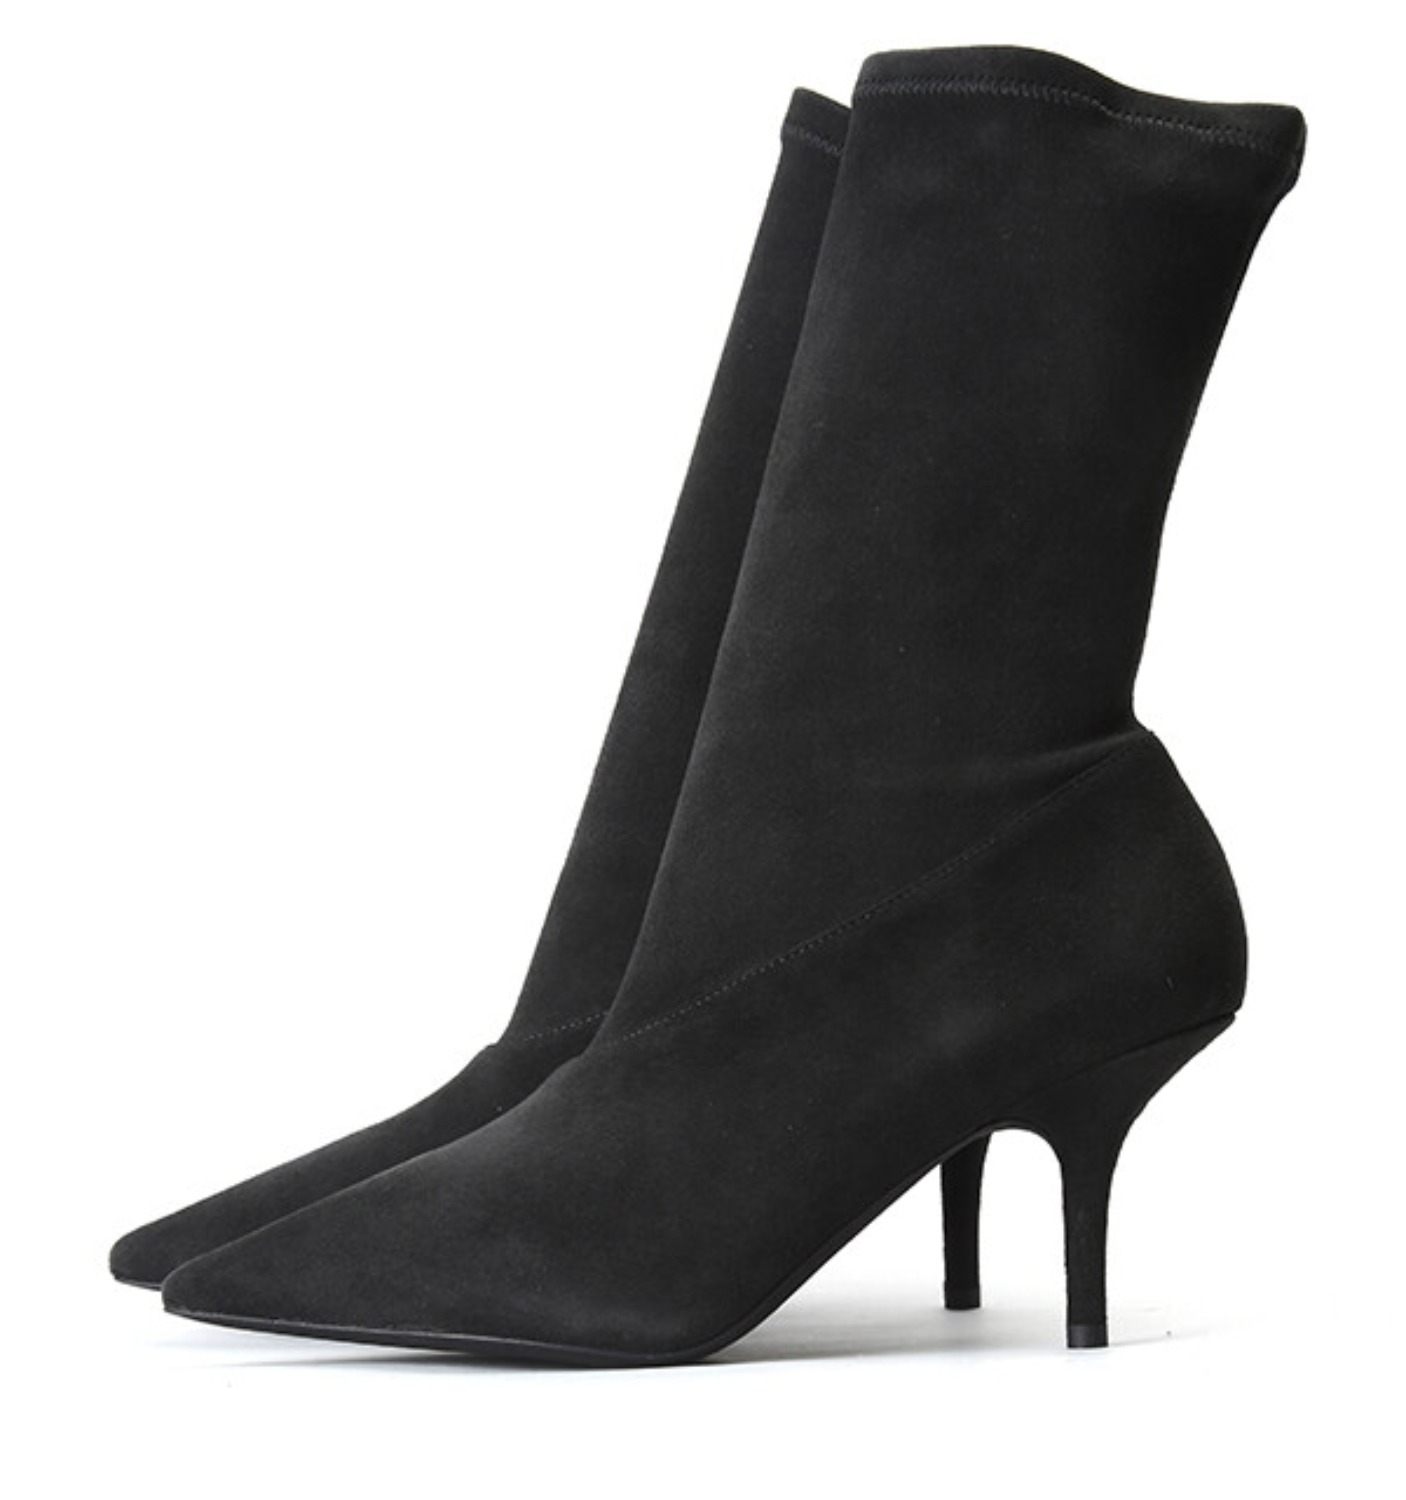 SUEDE ANKLE BOOTIE 70 MM